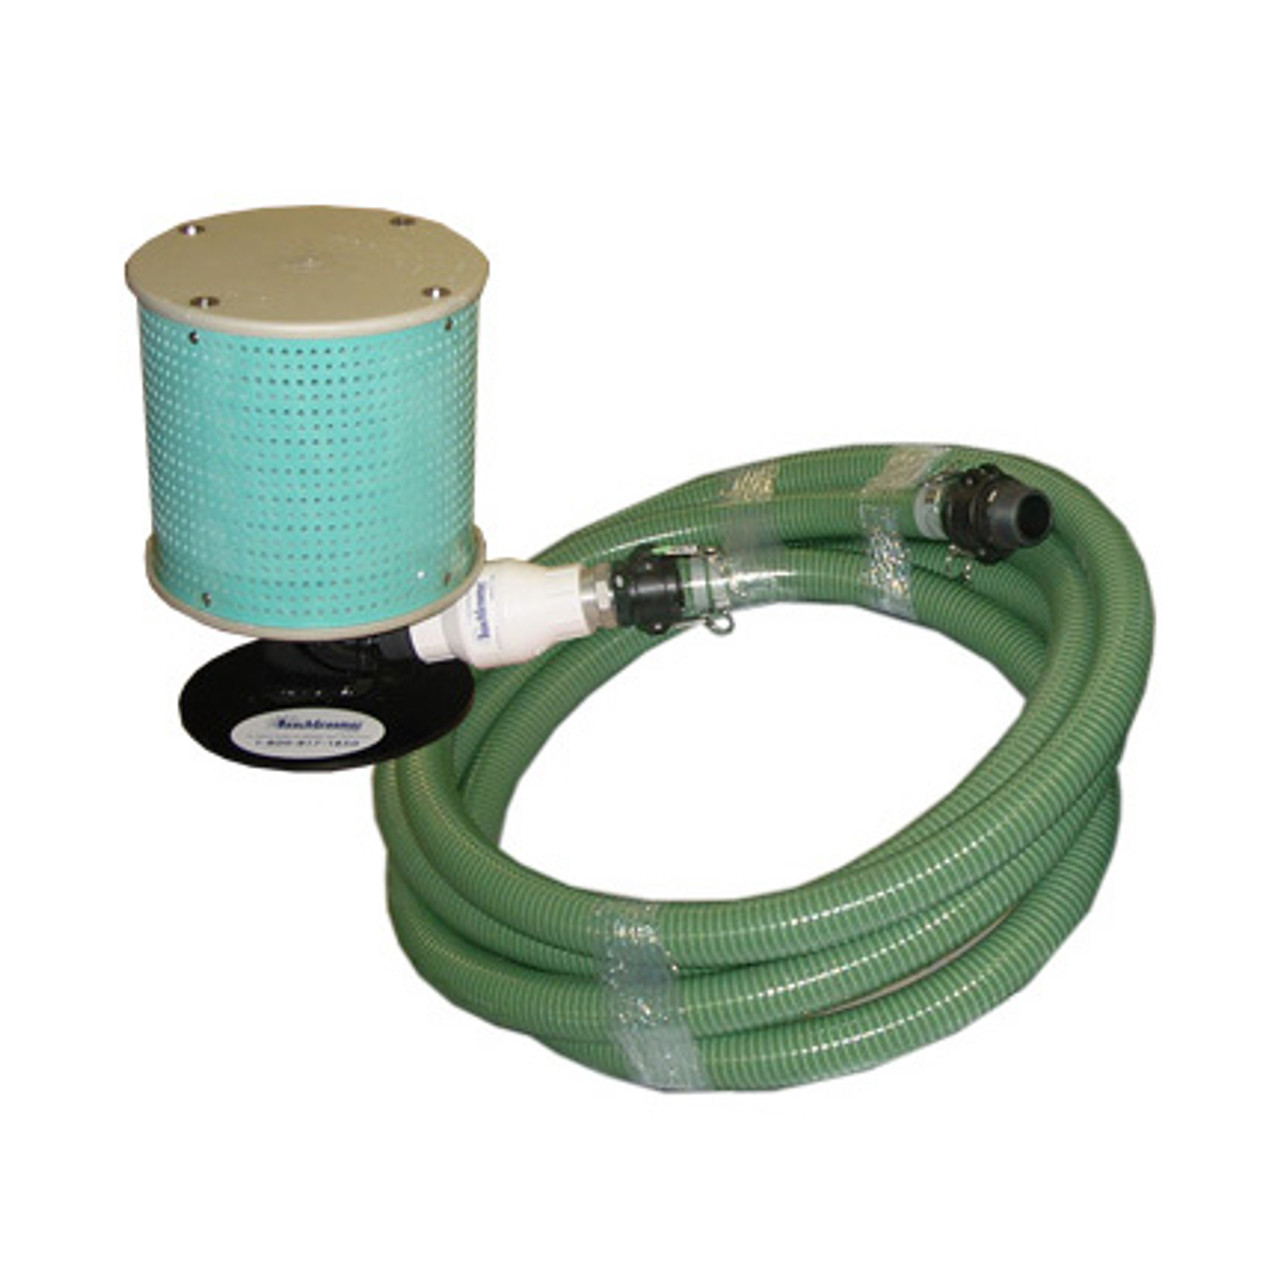 80 gallon Filter w/Stand, 33' Suction Hose and Check Valve for Lawn Irrigation Pump Package 2 hp